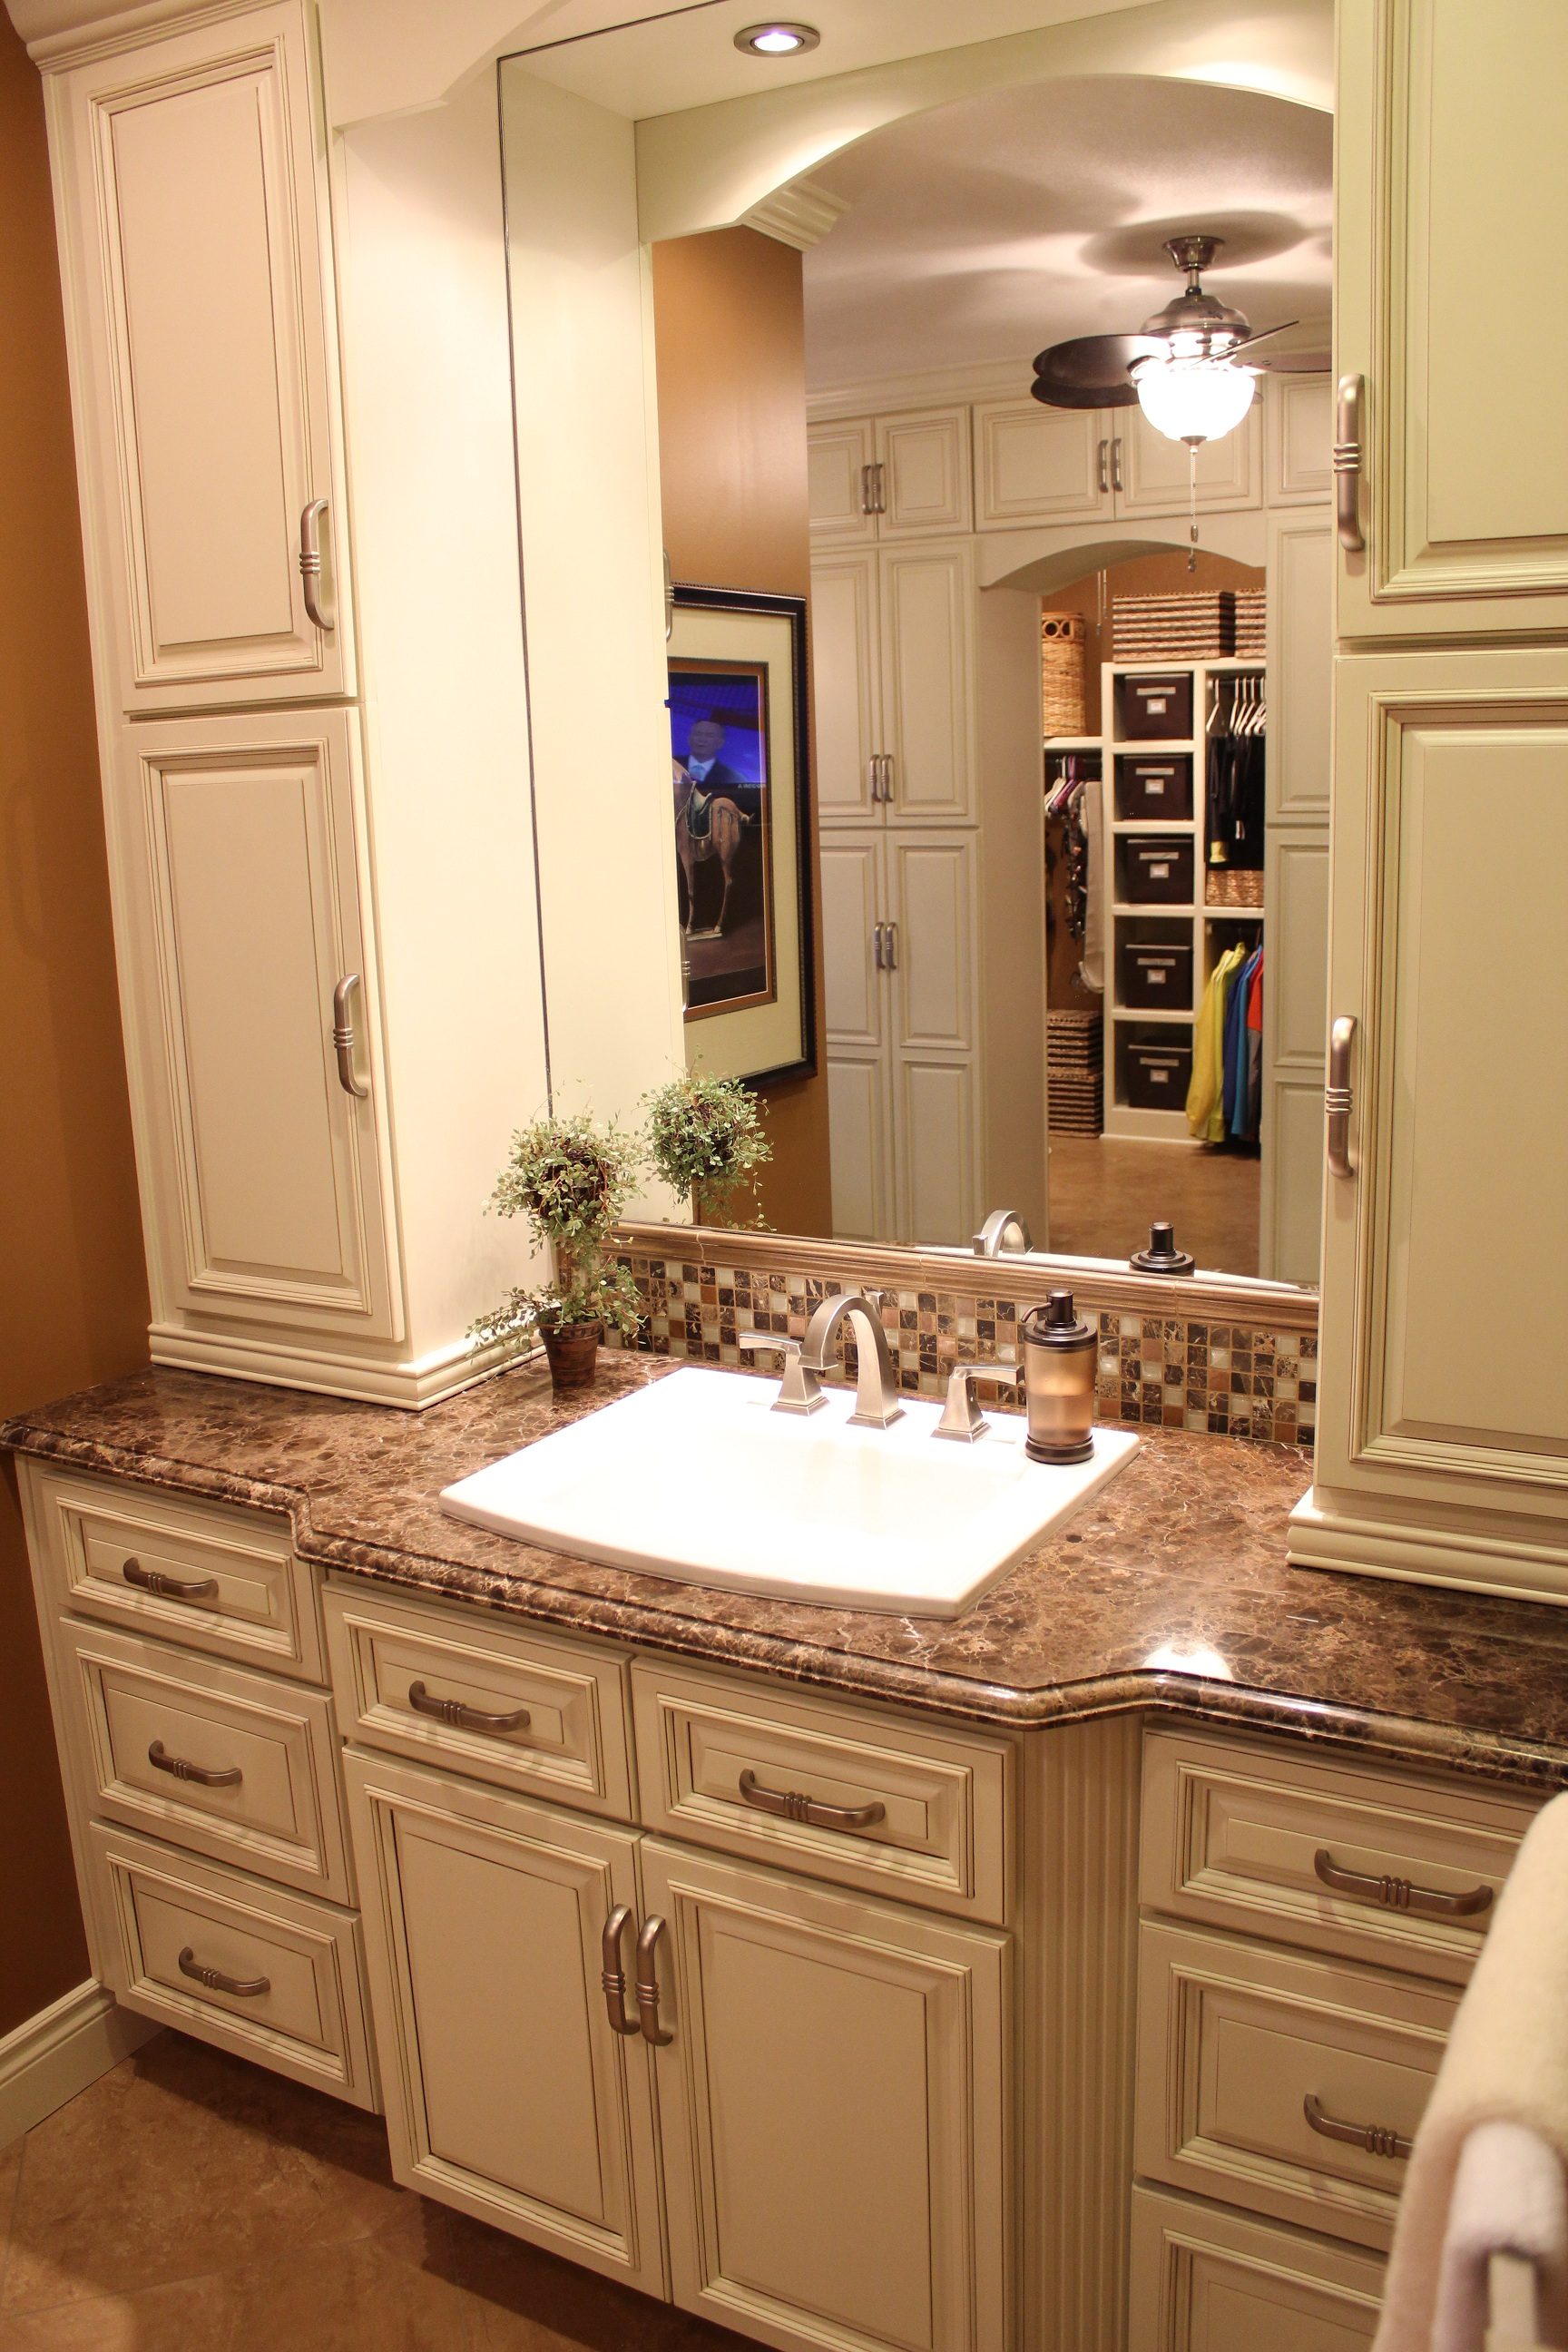 Lcl raised panel door premium cabinets - Pictures of vanities in bathrooms ...